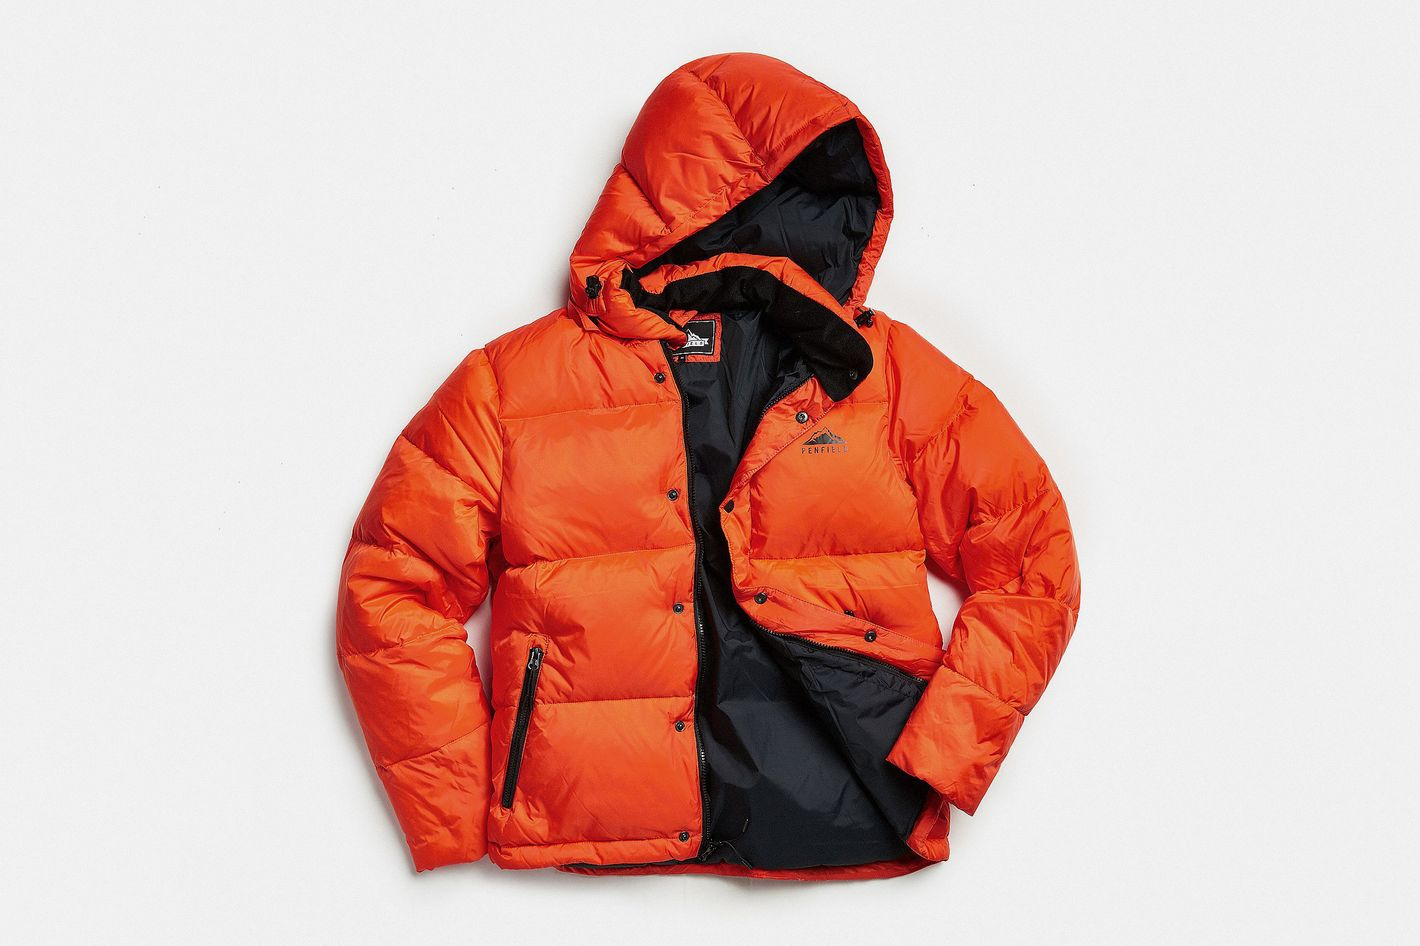 Penfield Equinox Hooded Puffer Jacket